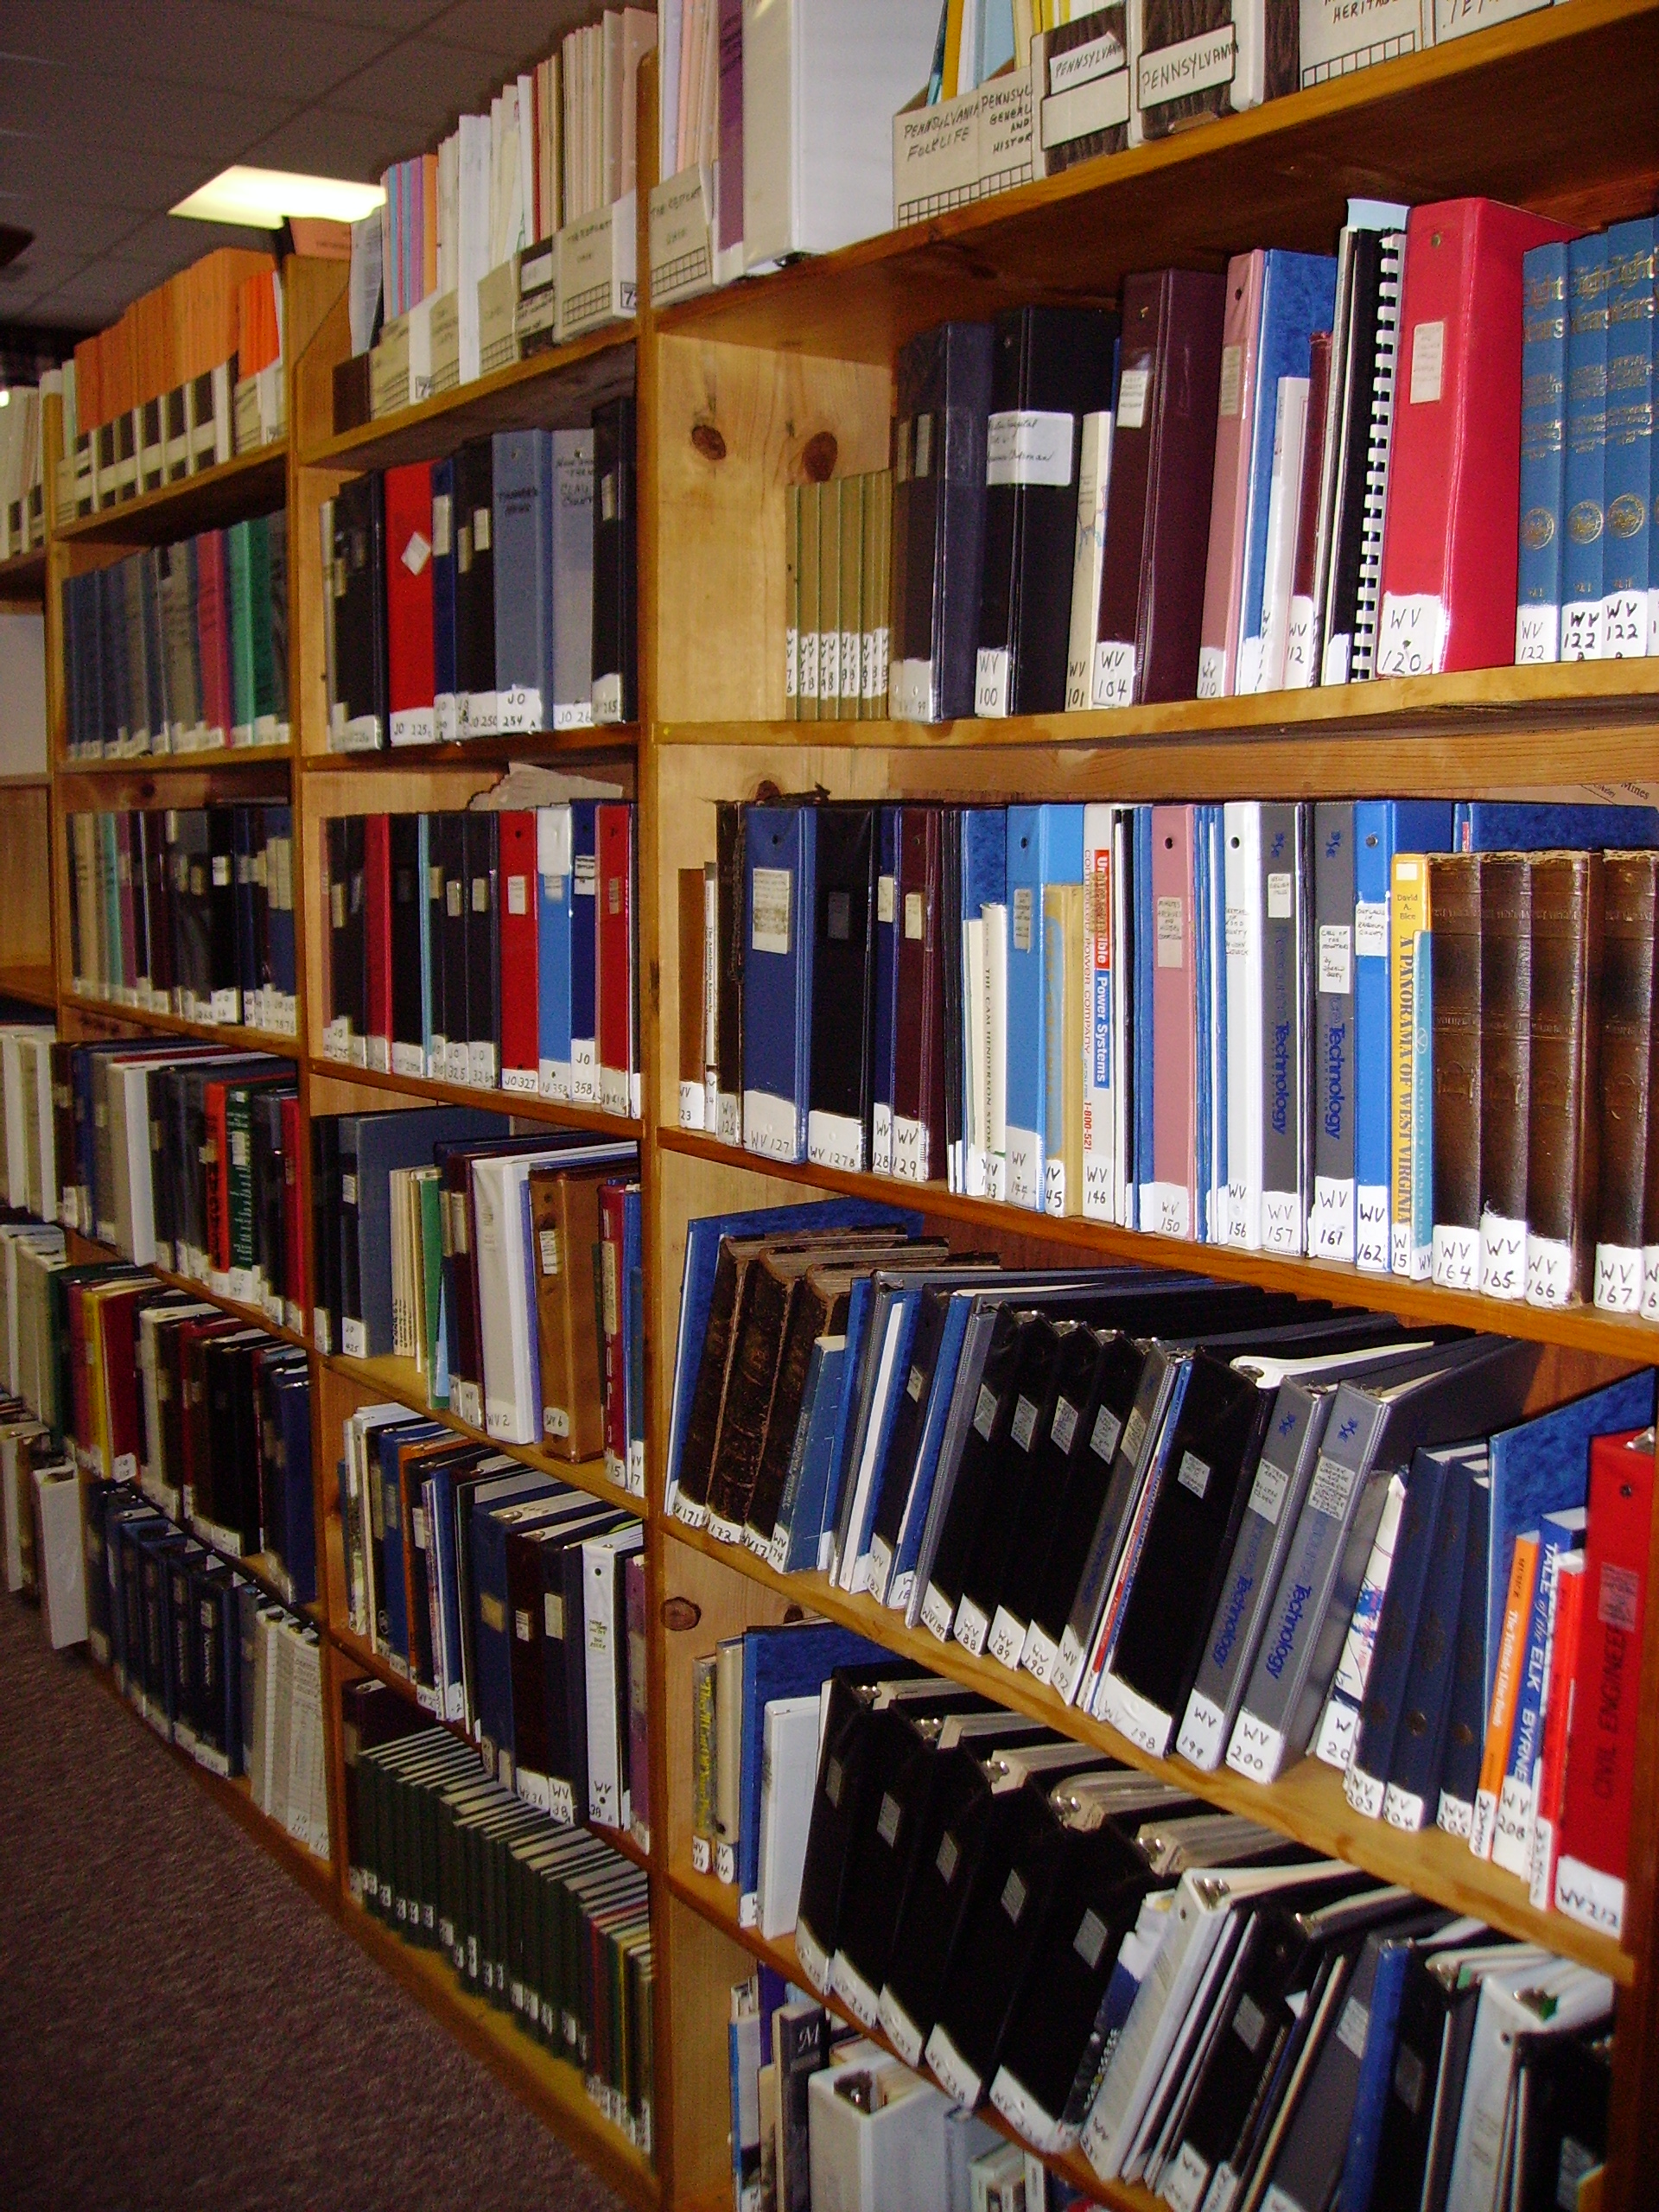 The library offers thousands of books and documents available for research. Photo courtesy of the HCPD.